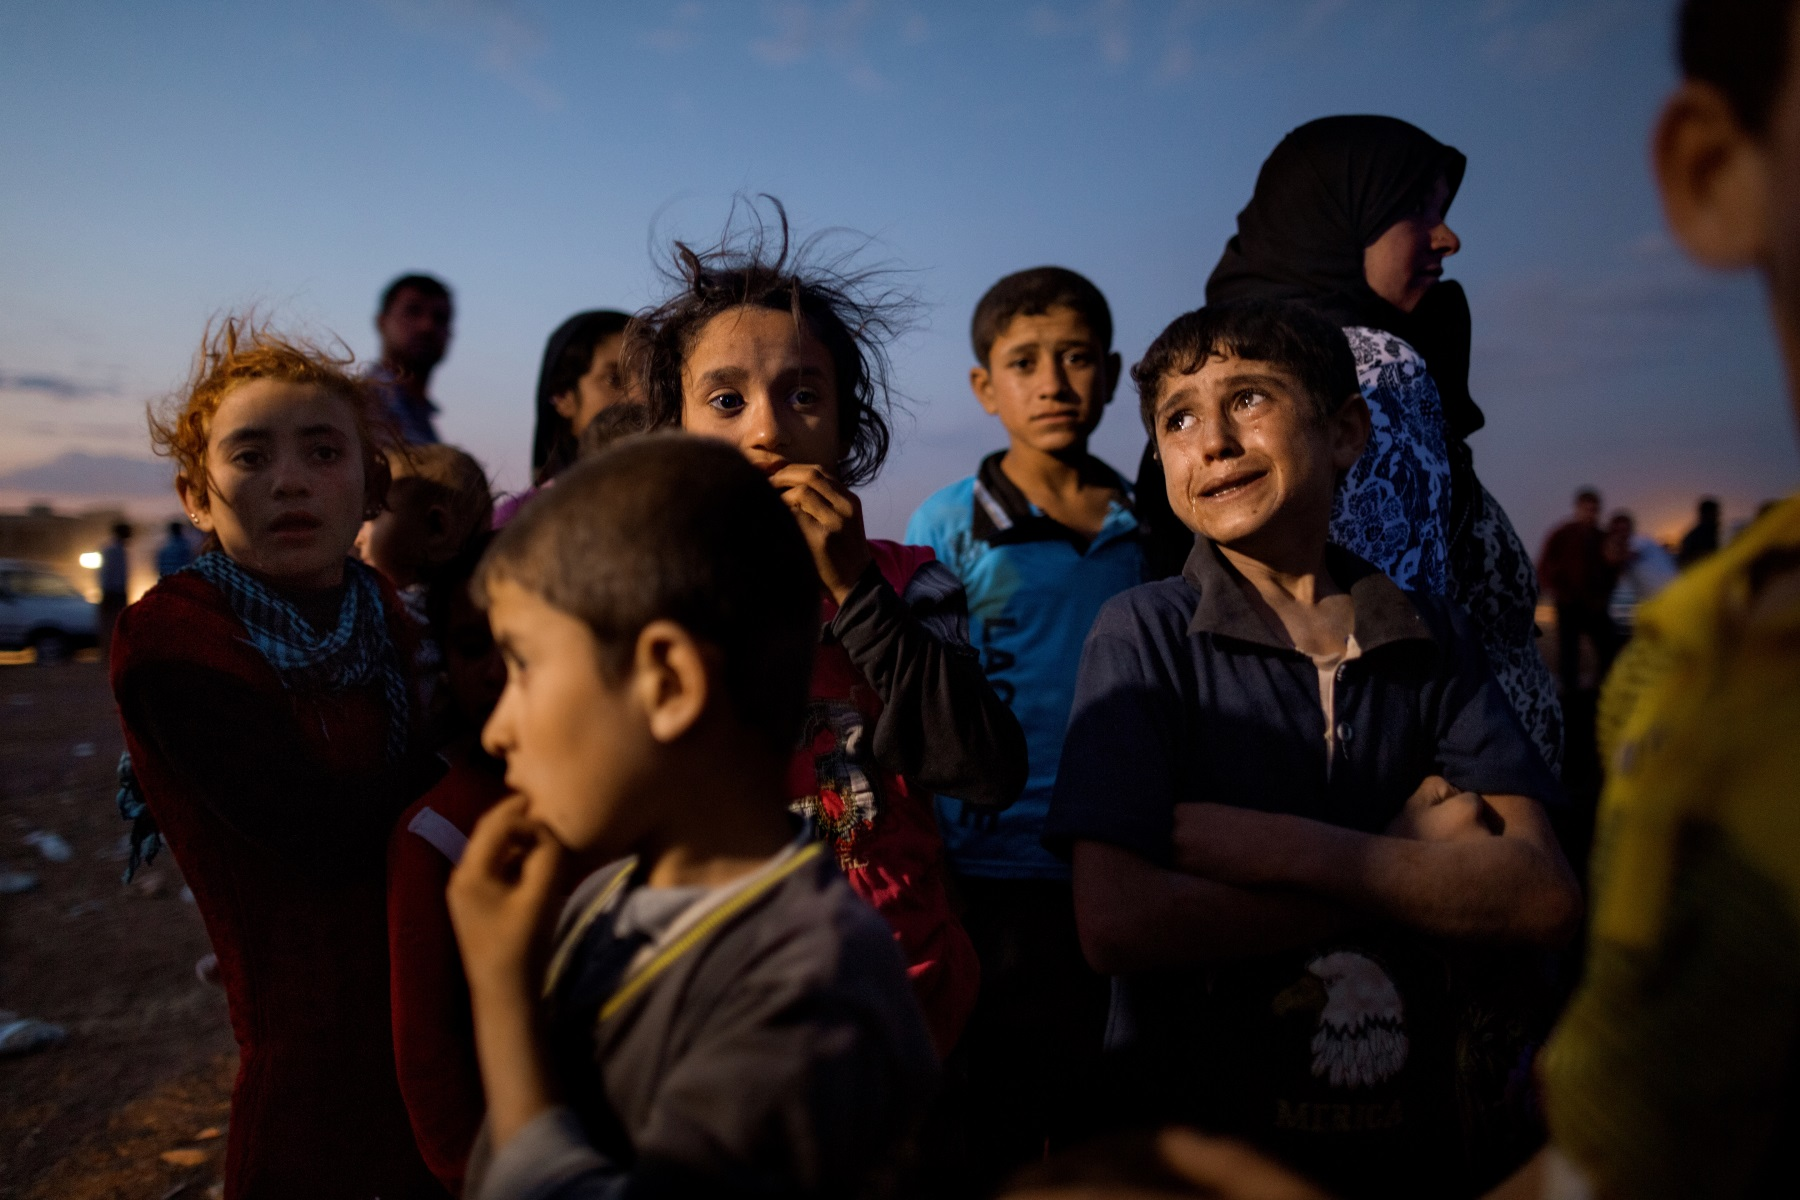 Ahmed, age 5, (right) cries out of fear after crossing into Turkey from Syria with his family Saturday night. Tens of thousands of Kurds fled an Islamic State assault on Kobani in Syria and stream across the border into the Turkish town of Dikmetas on Saturday, September 20, 2014. This was day two of the exodus when 200,000 Syrian's, mostly Kurds, crossed into Turkey in 72 hours.